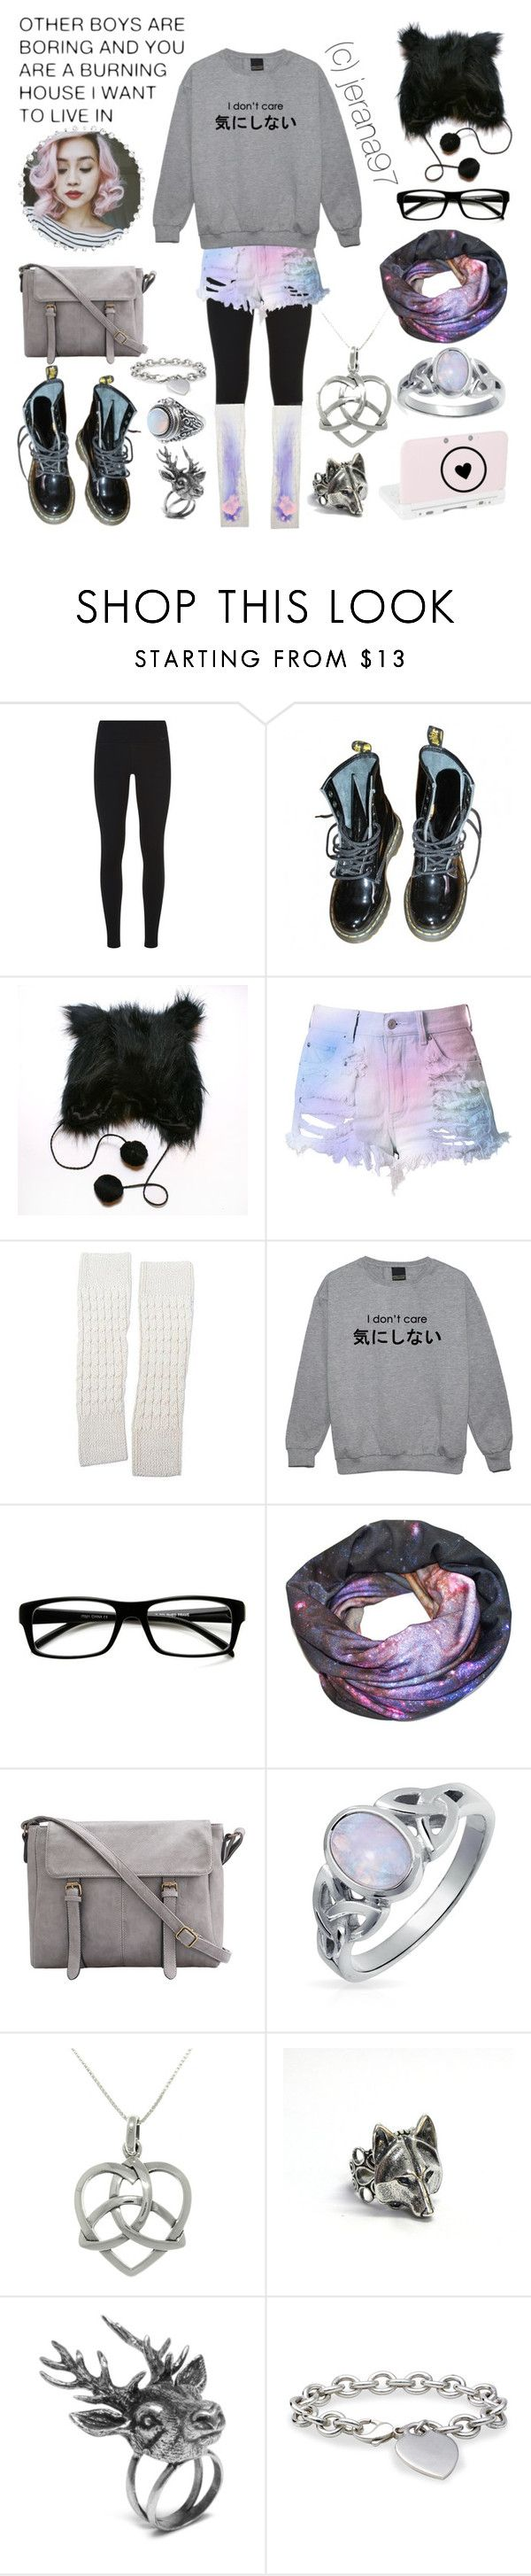 """""""*:. One night of magic rush, the start a simple touch .:*"""" by jerana97 ❤ liked on Polyvore featuring NIKE, Dr. Martens, Cotton Candy, NOVICA, ZeroUV, Bling Jewelry, Carolina Glamour Collection, Mulberry and Blue Nile"""